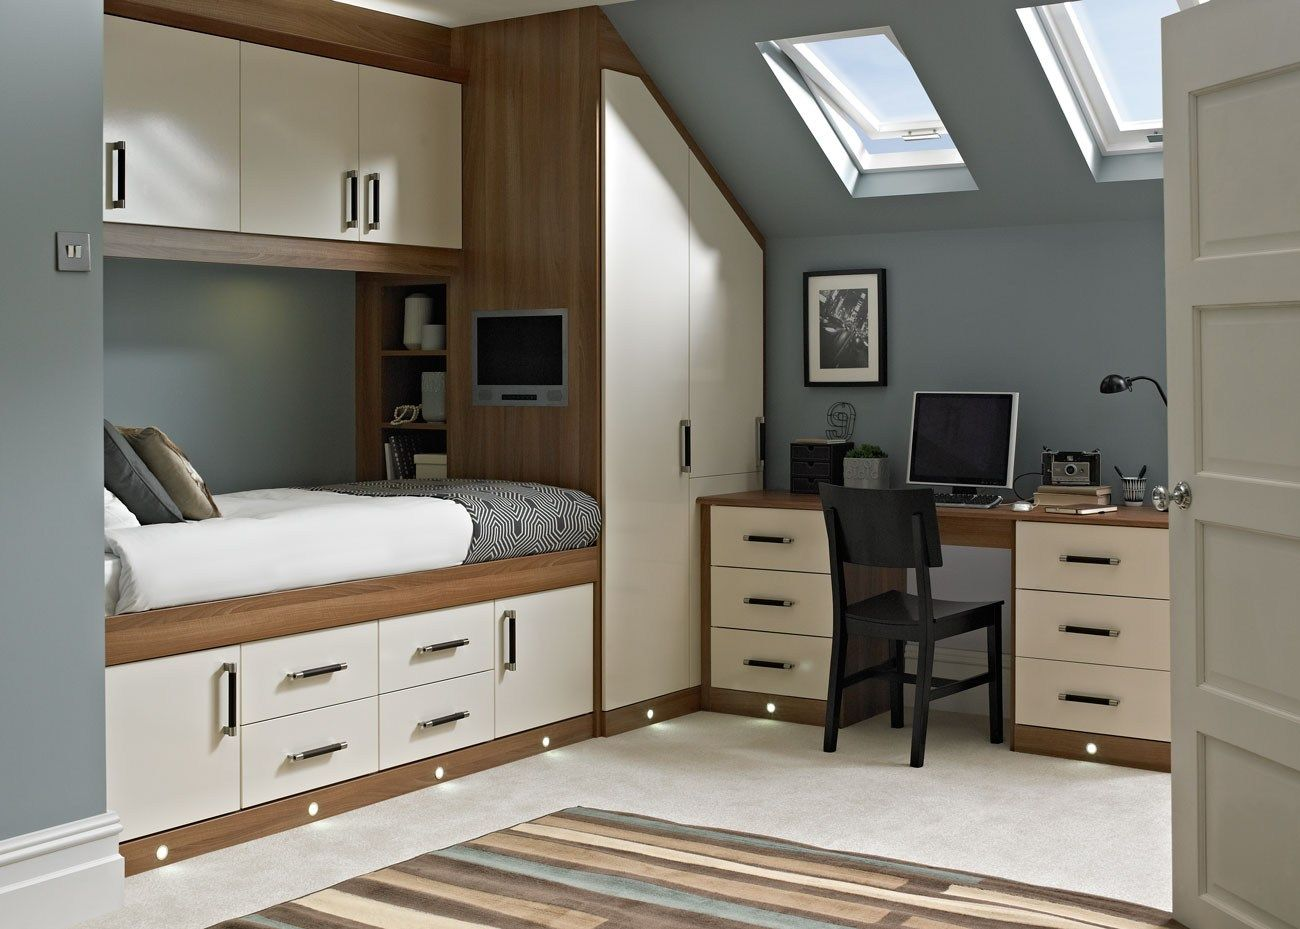 Espirit Cream Bedroom | Fitted Bedrooms from Betta Living ...